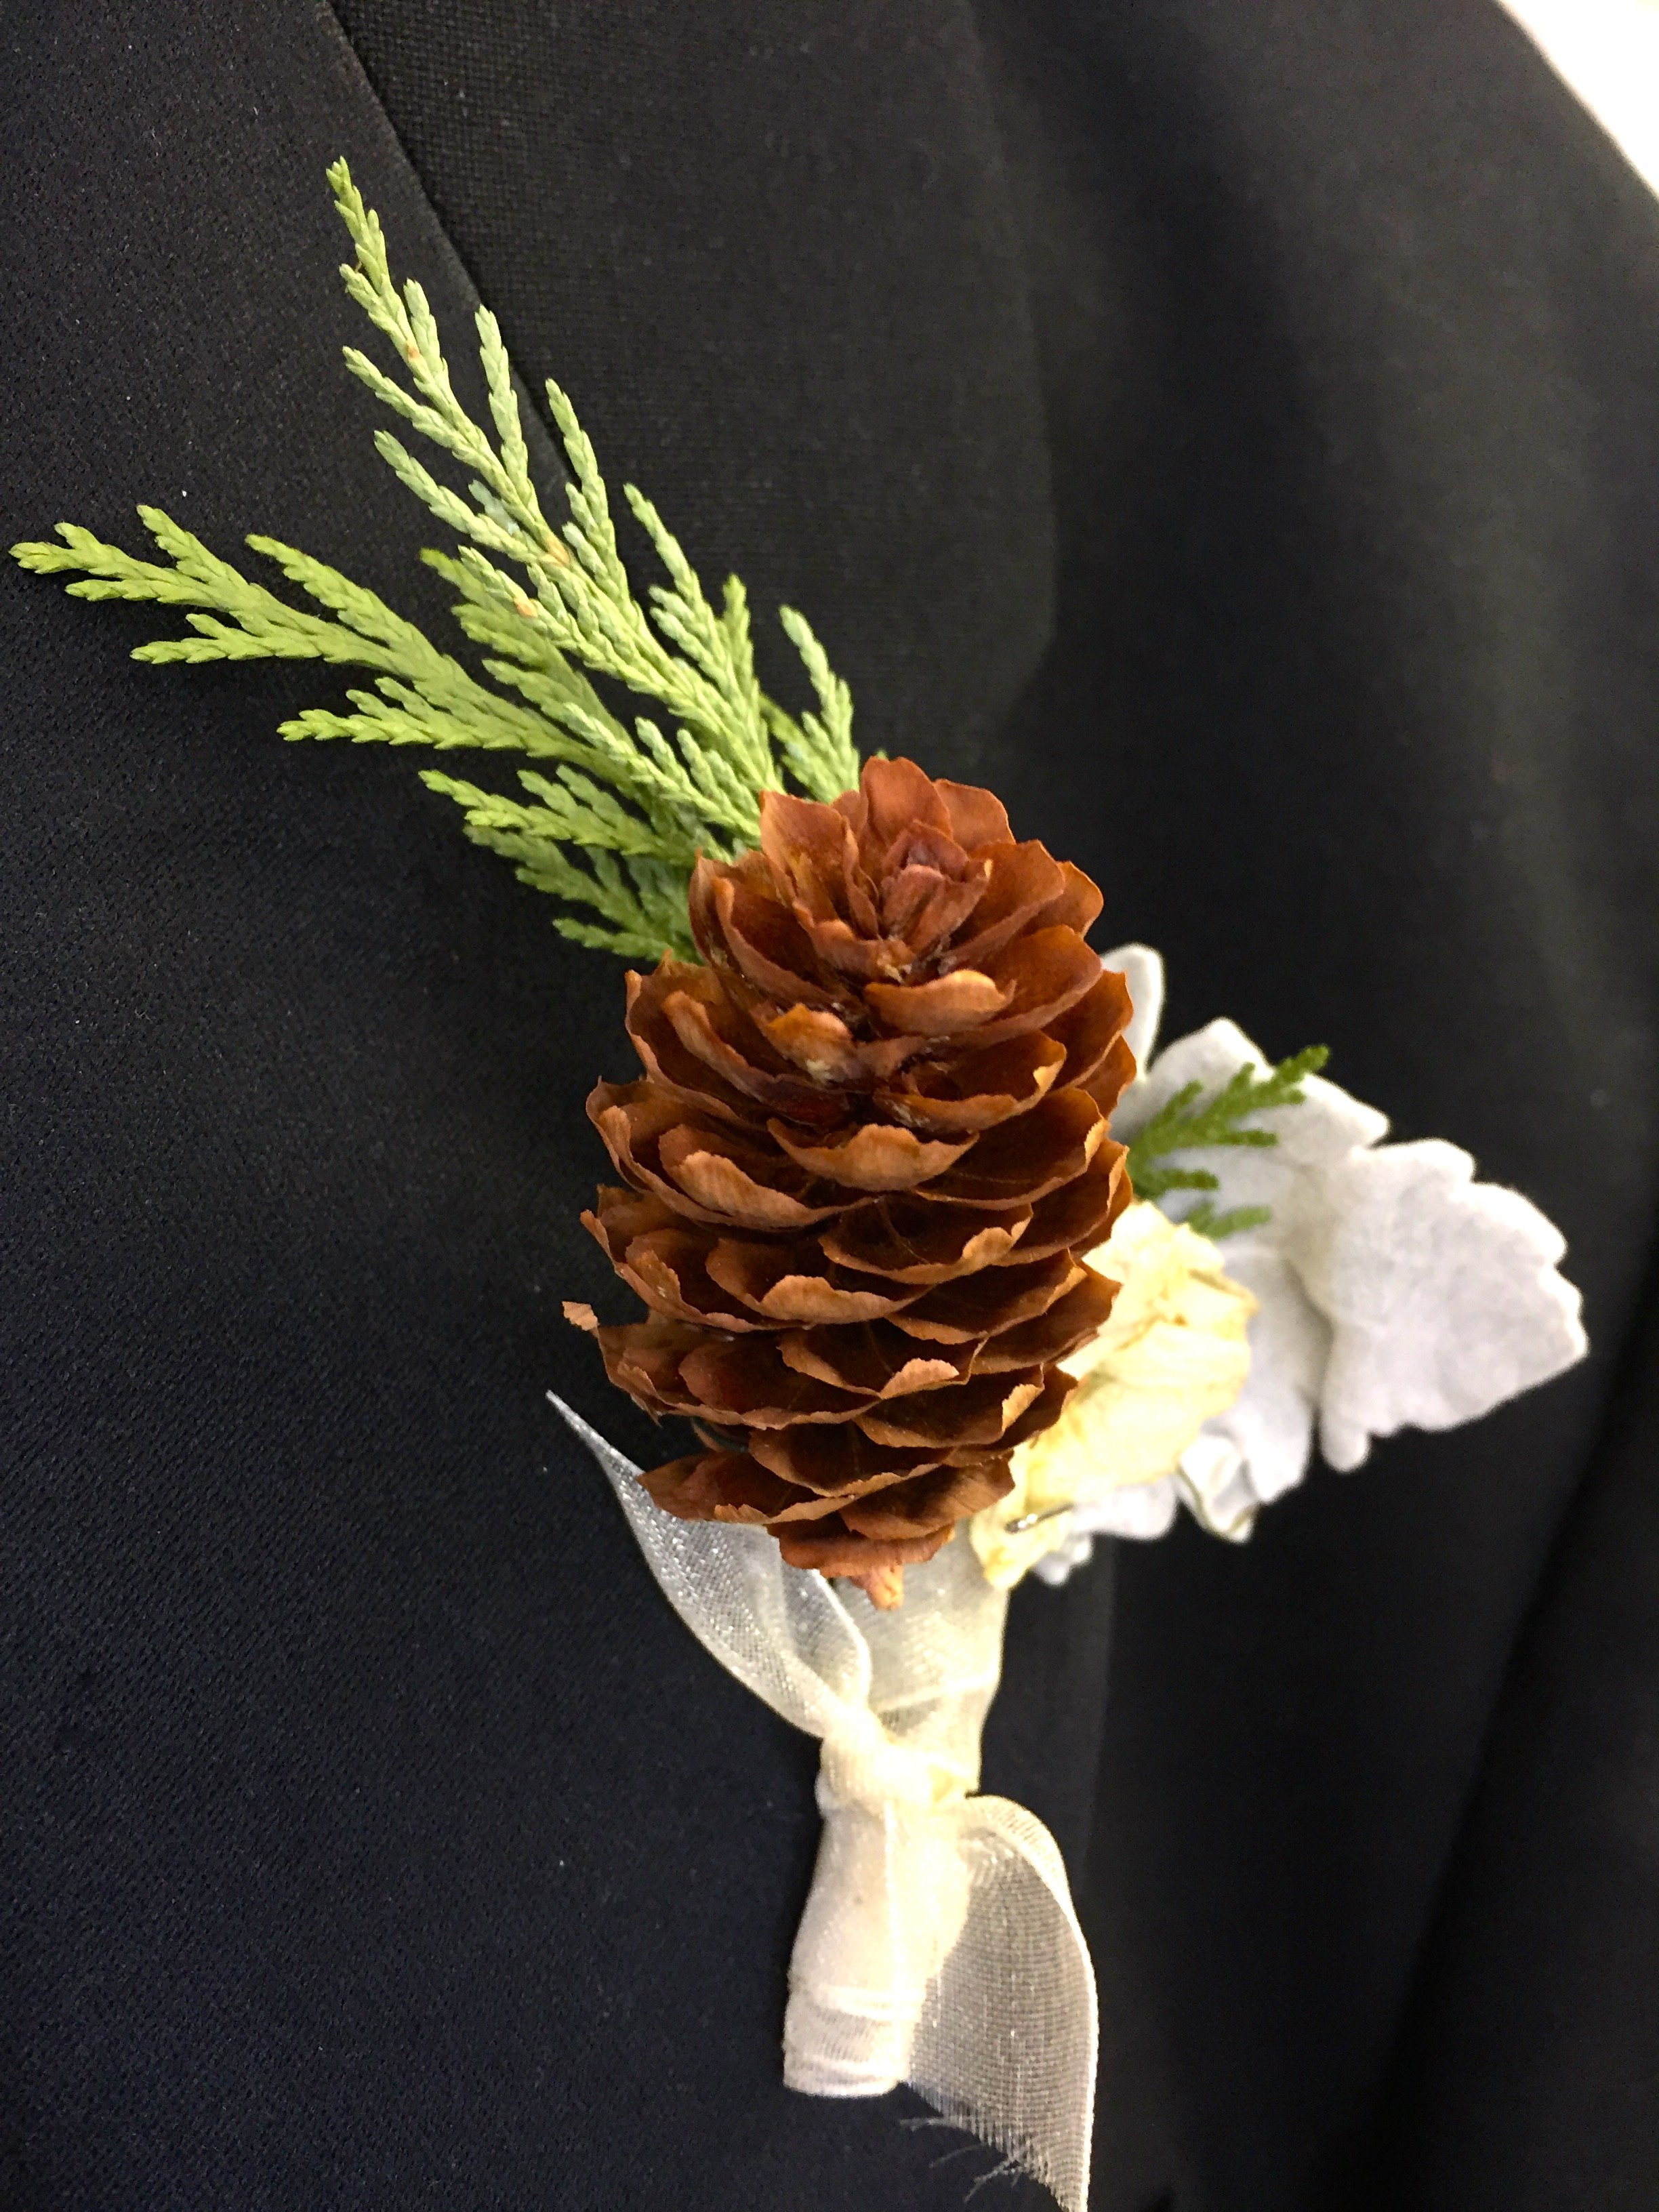 One of my favorite corsages that was left on a groomsman's tux. What a fun idea for a mountain wedding!